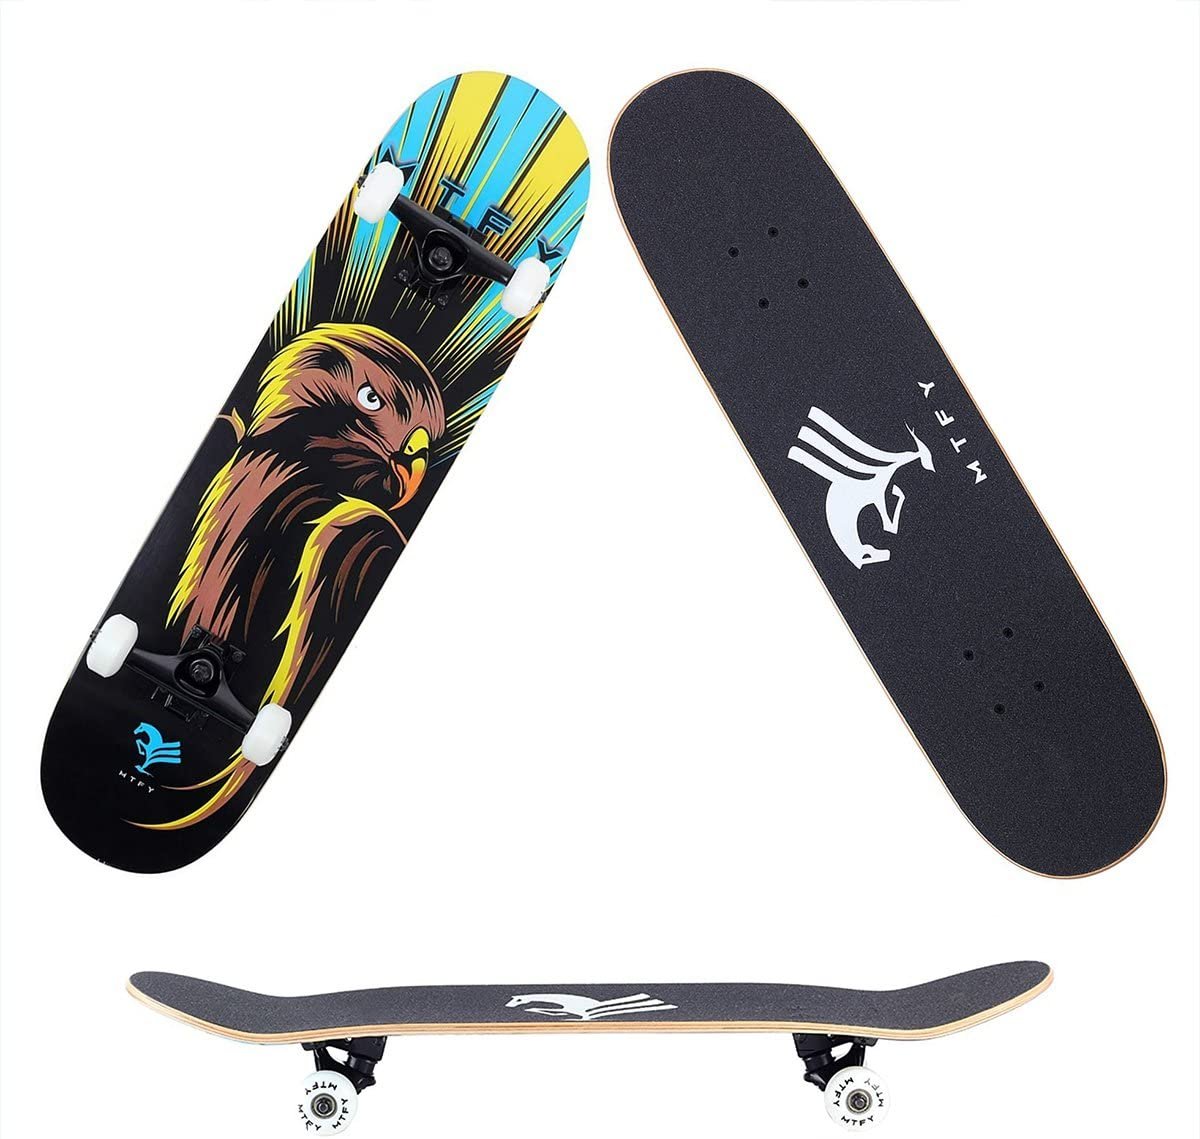 MTFY Skateboards Canadian Maple Wood 31 Pro Long Boards Skateboard Double Kick Concave Cruiser Skateboards